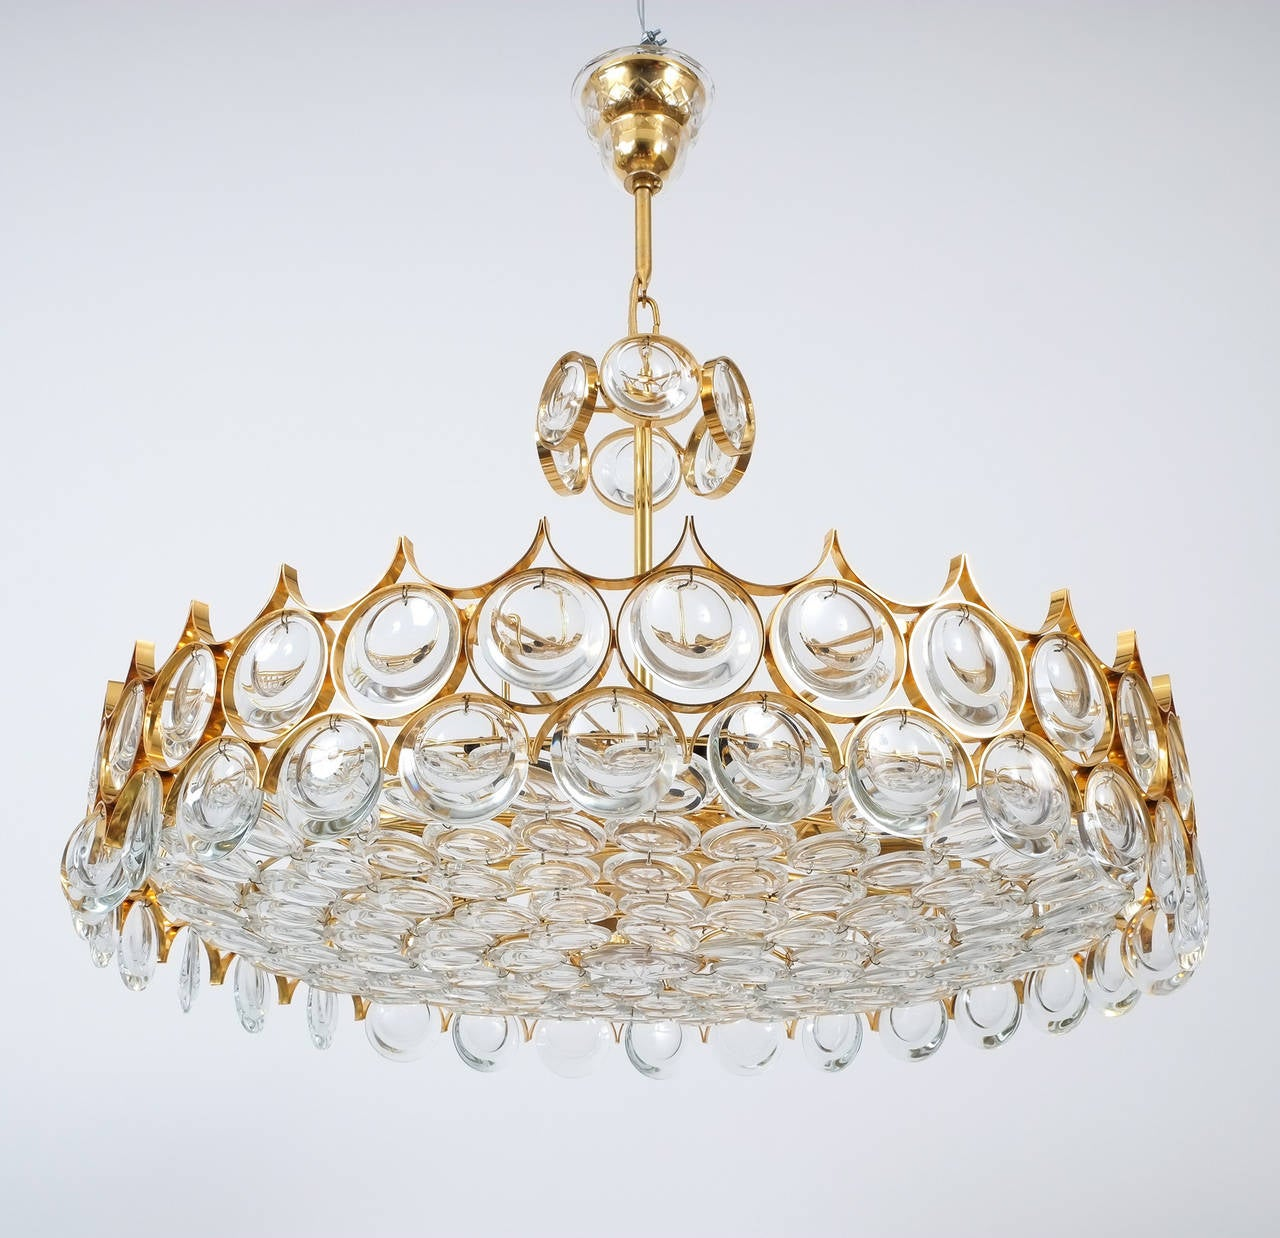 Palwa Gold Brass and Glass Large Chandelier Ceiling Lamp, 1960 In Excellent Condition For Sale In Vienna, AT